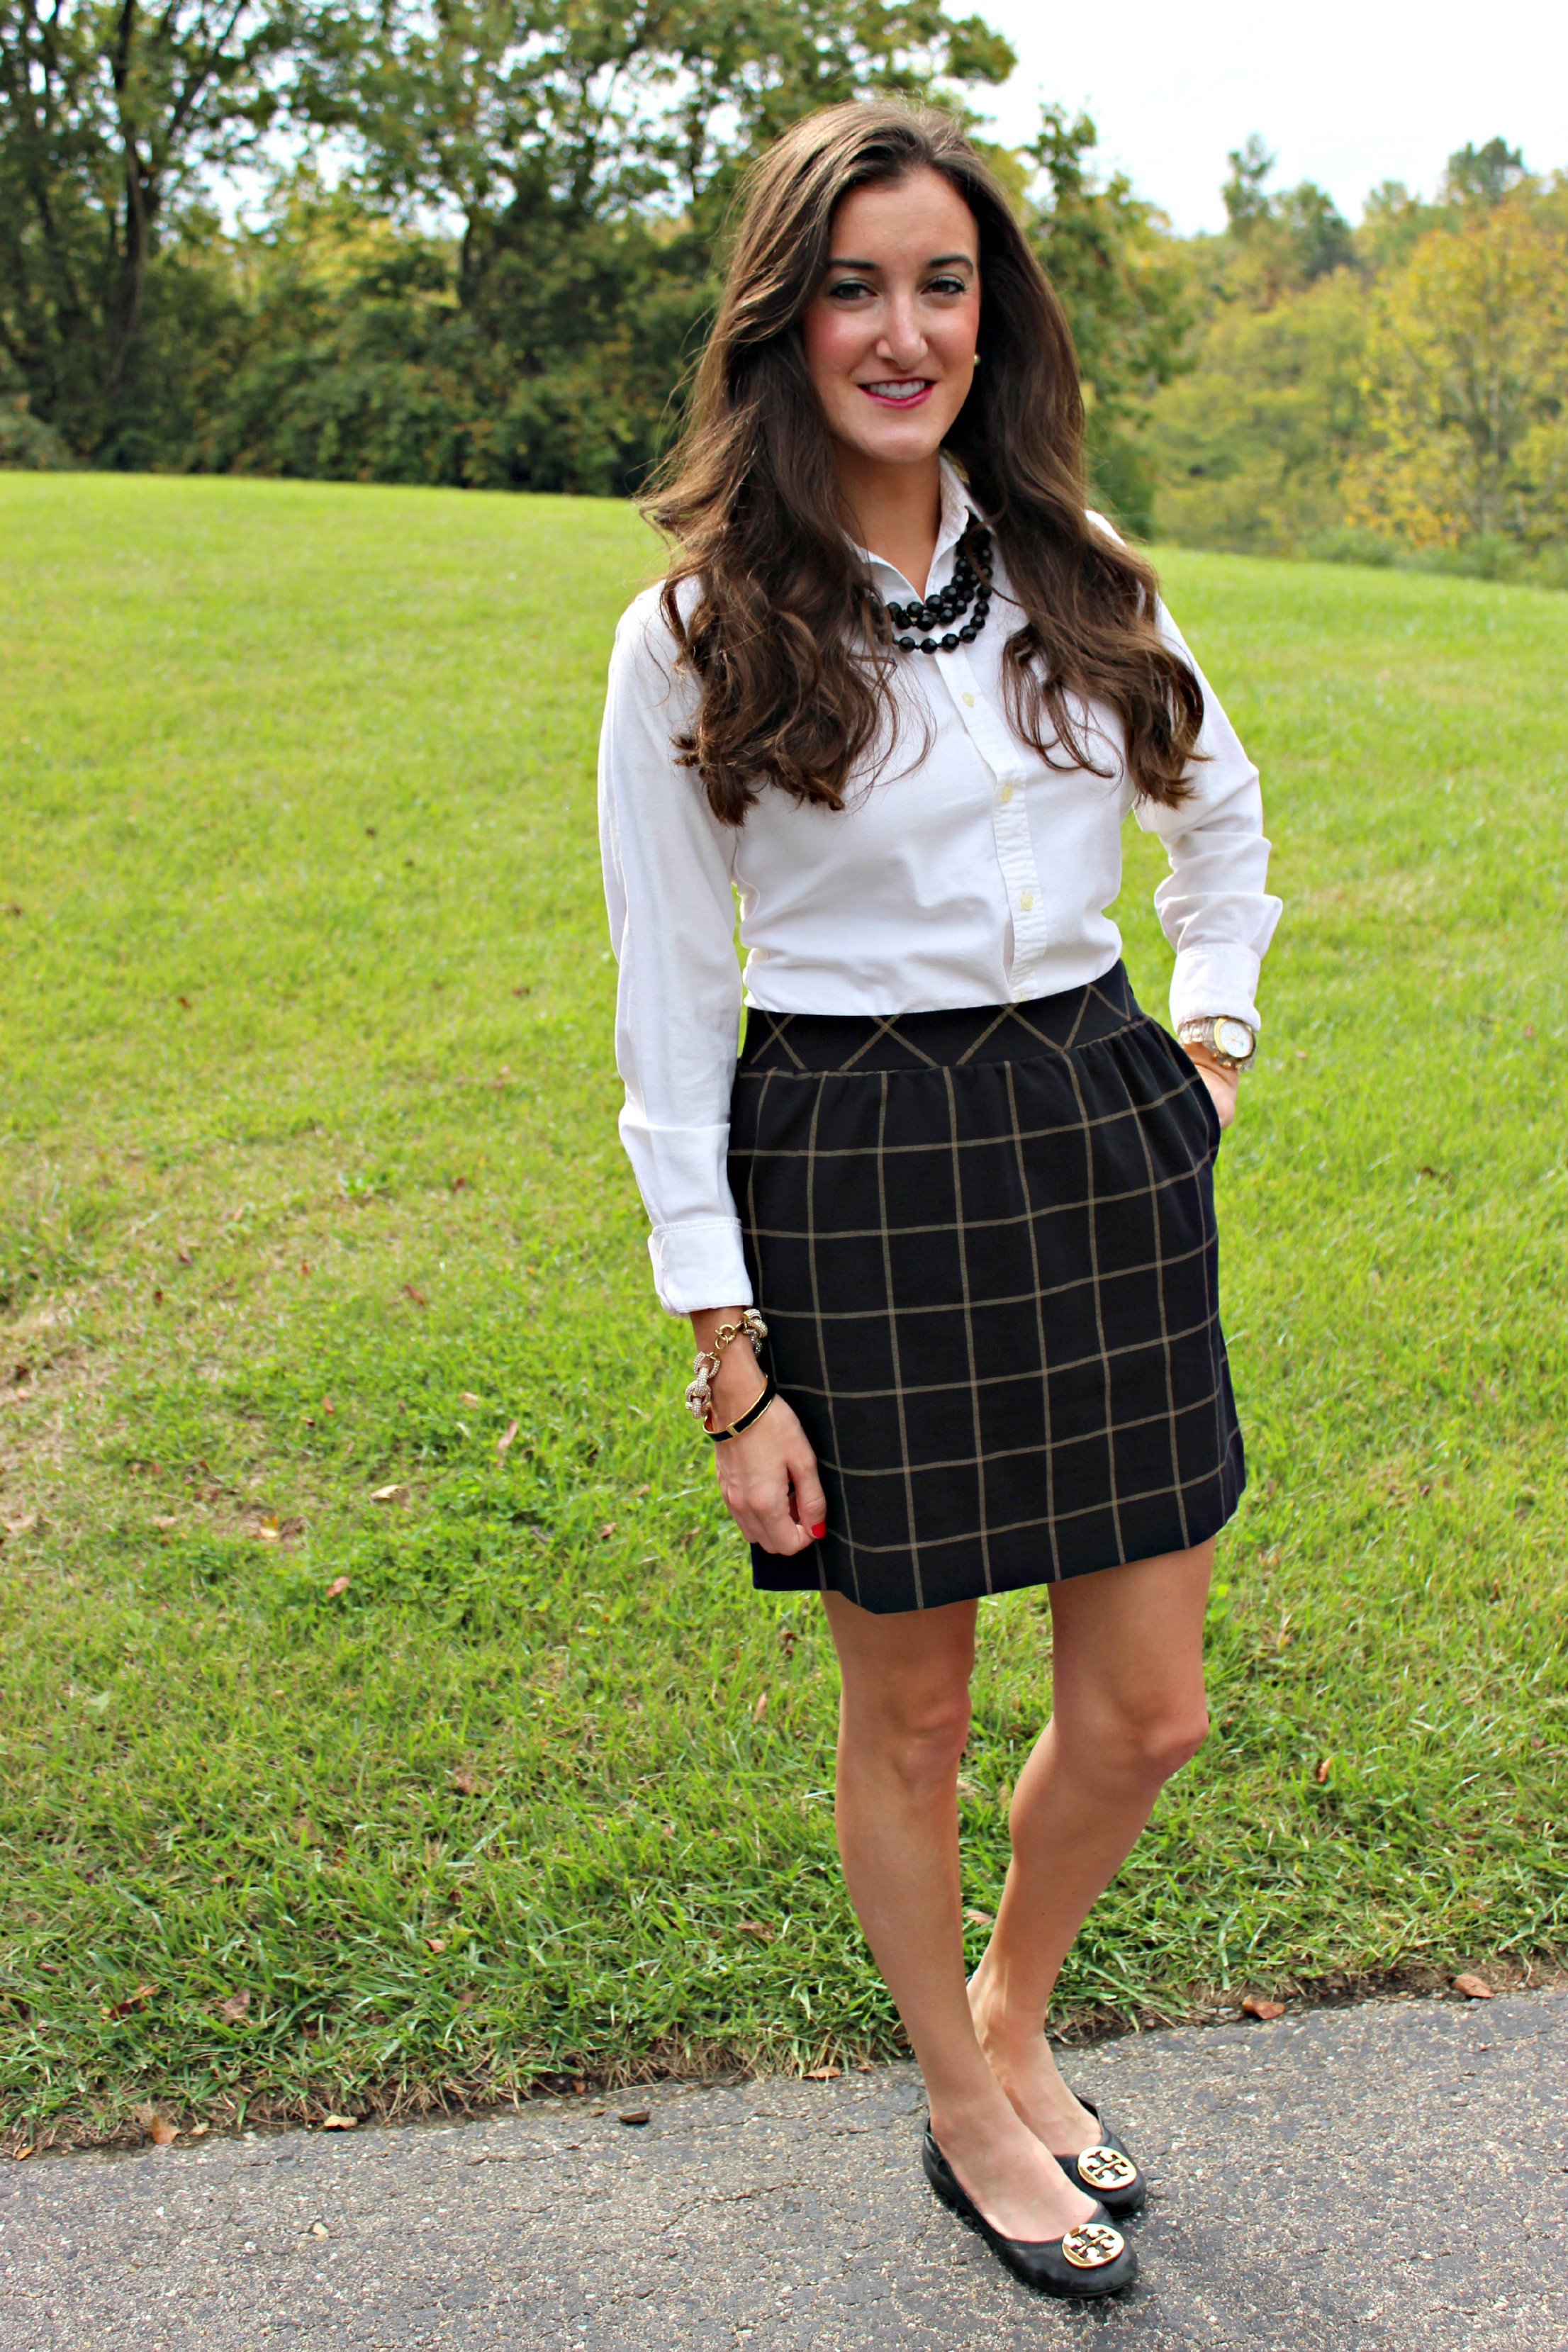 Cute Outfits For School For Girls High School High School Preppy Girl Outfit